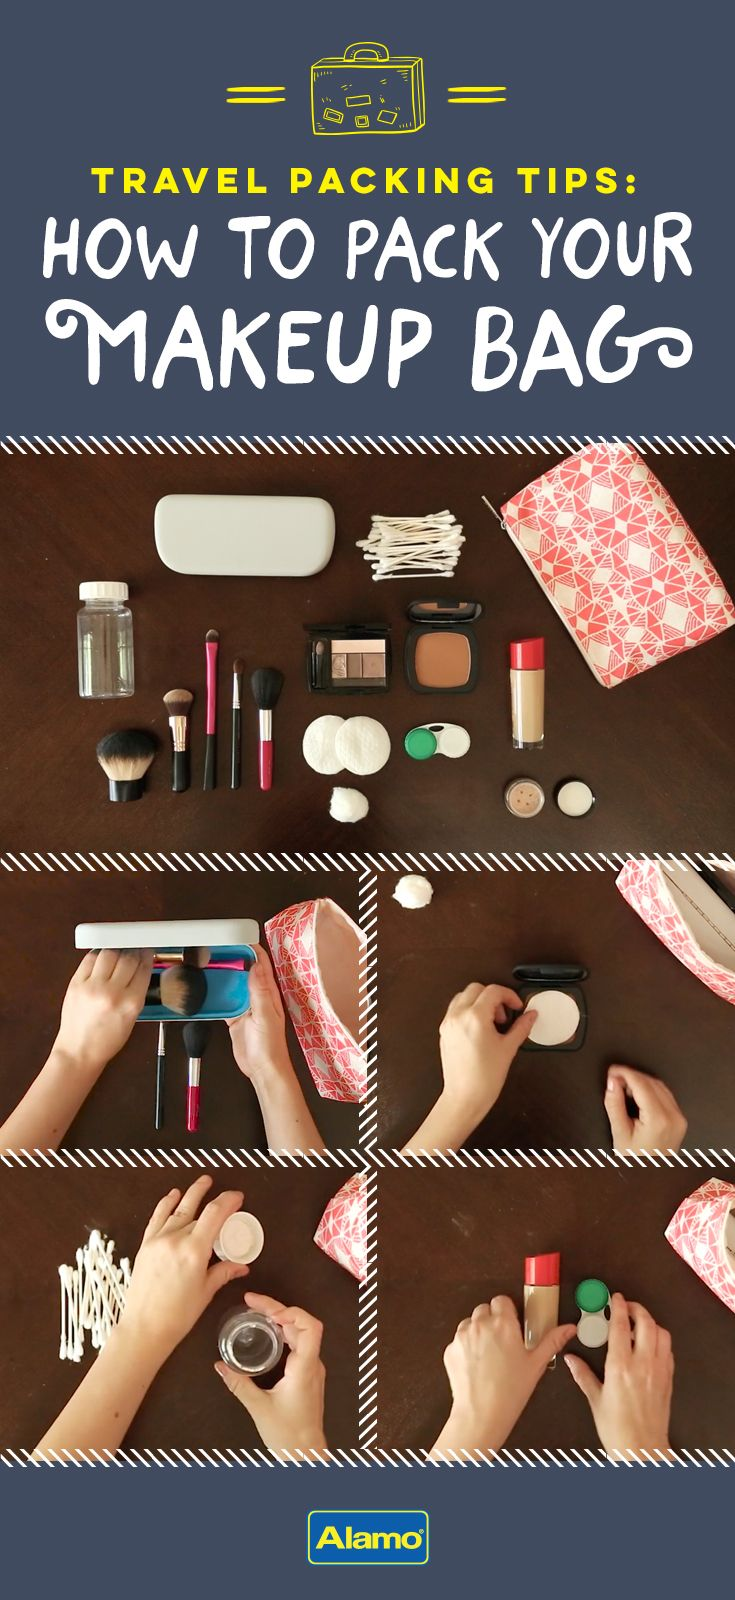 Protect your compacts, prevent spills and save space in your makeup bag with these clever packing hacks to help you arrive beautifully.